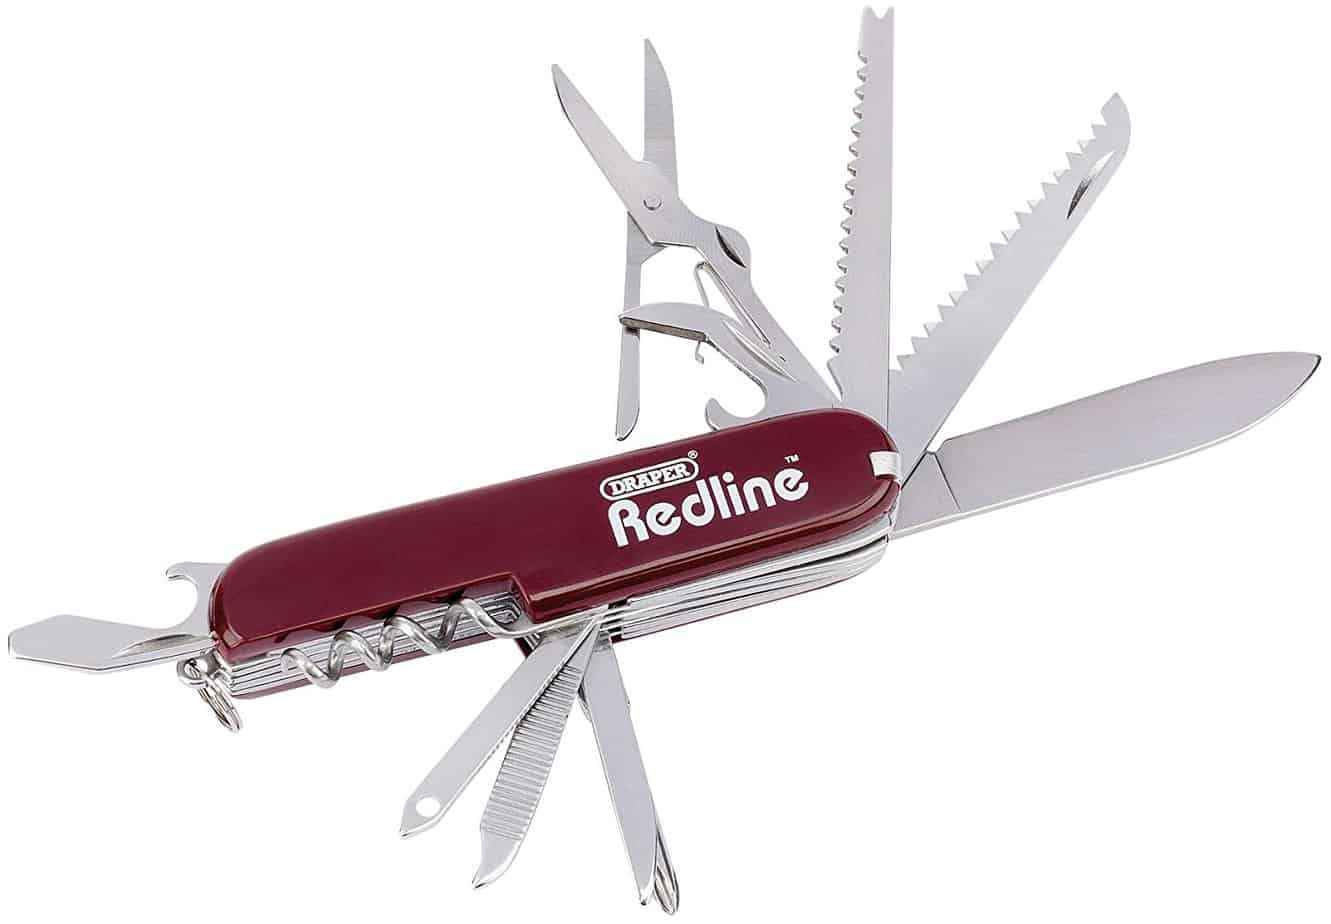 Draper Redline 67679 13 Function Pocket Knife